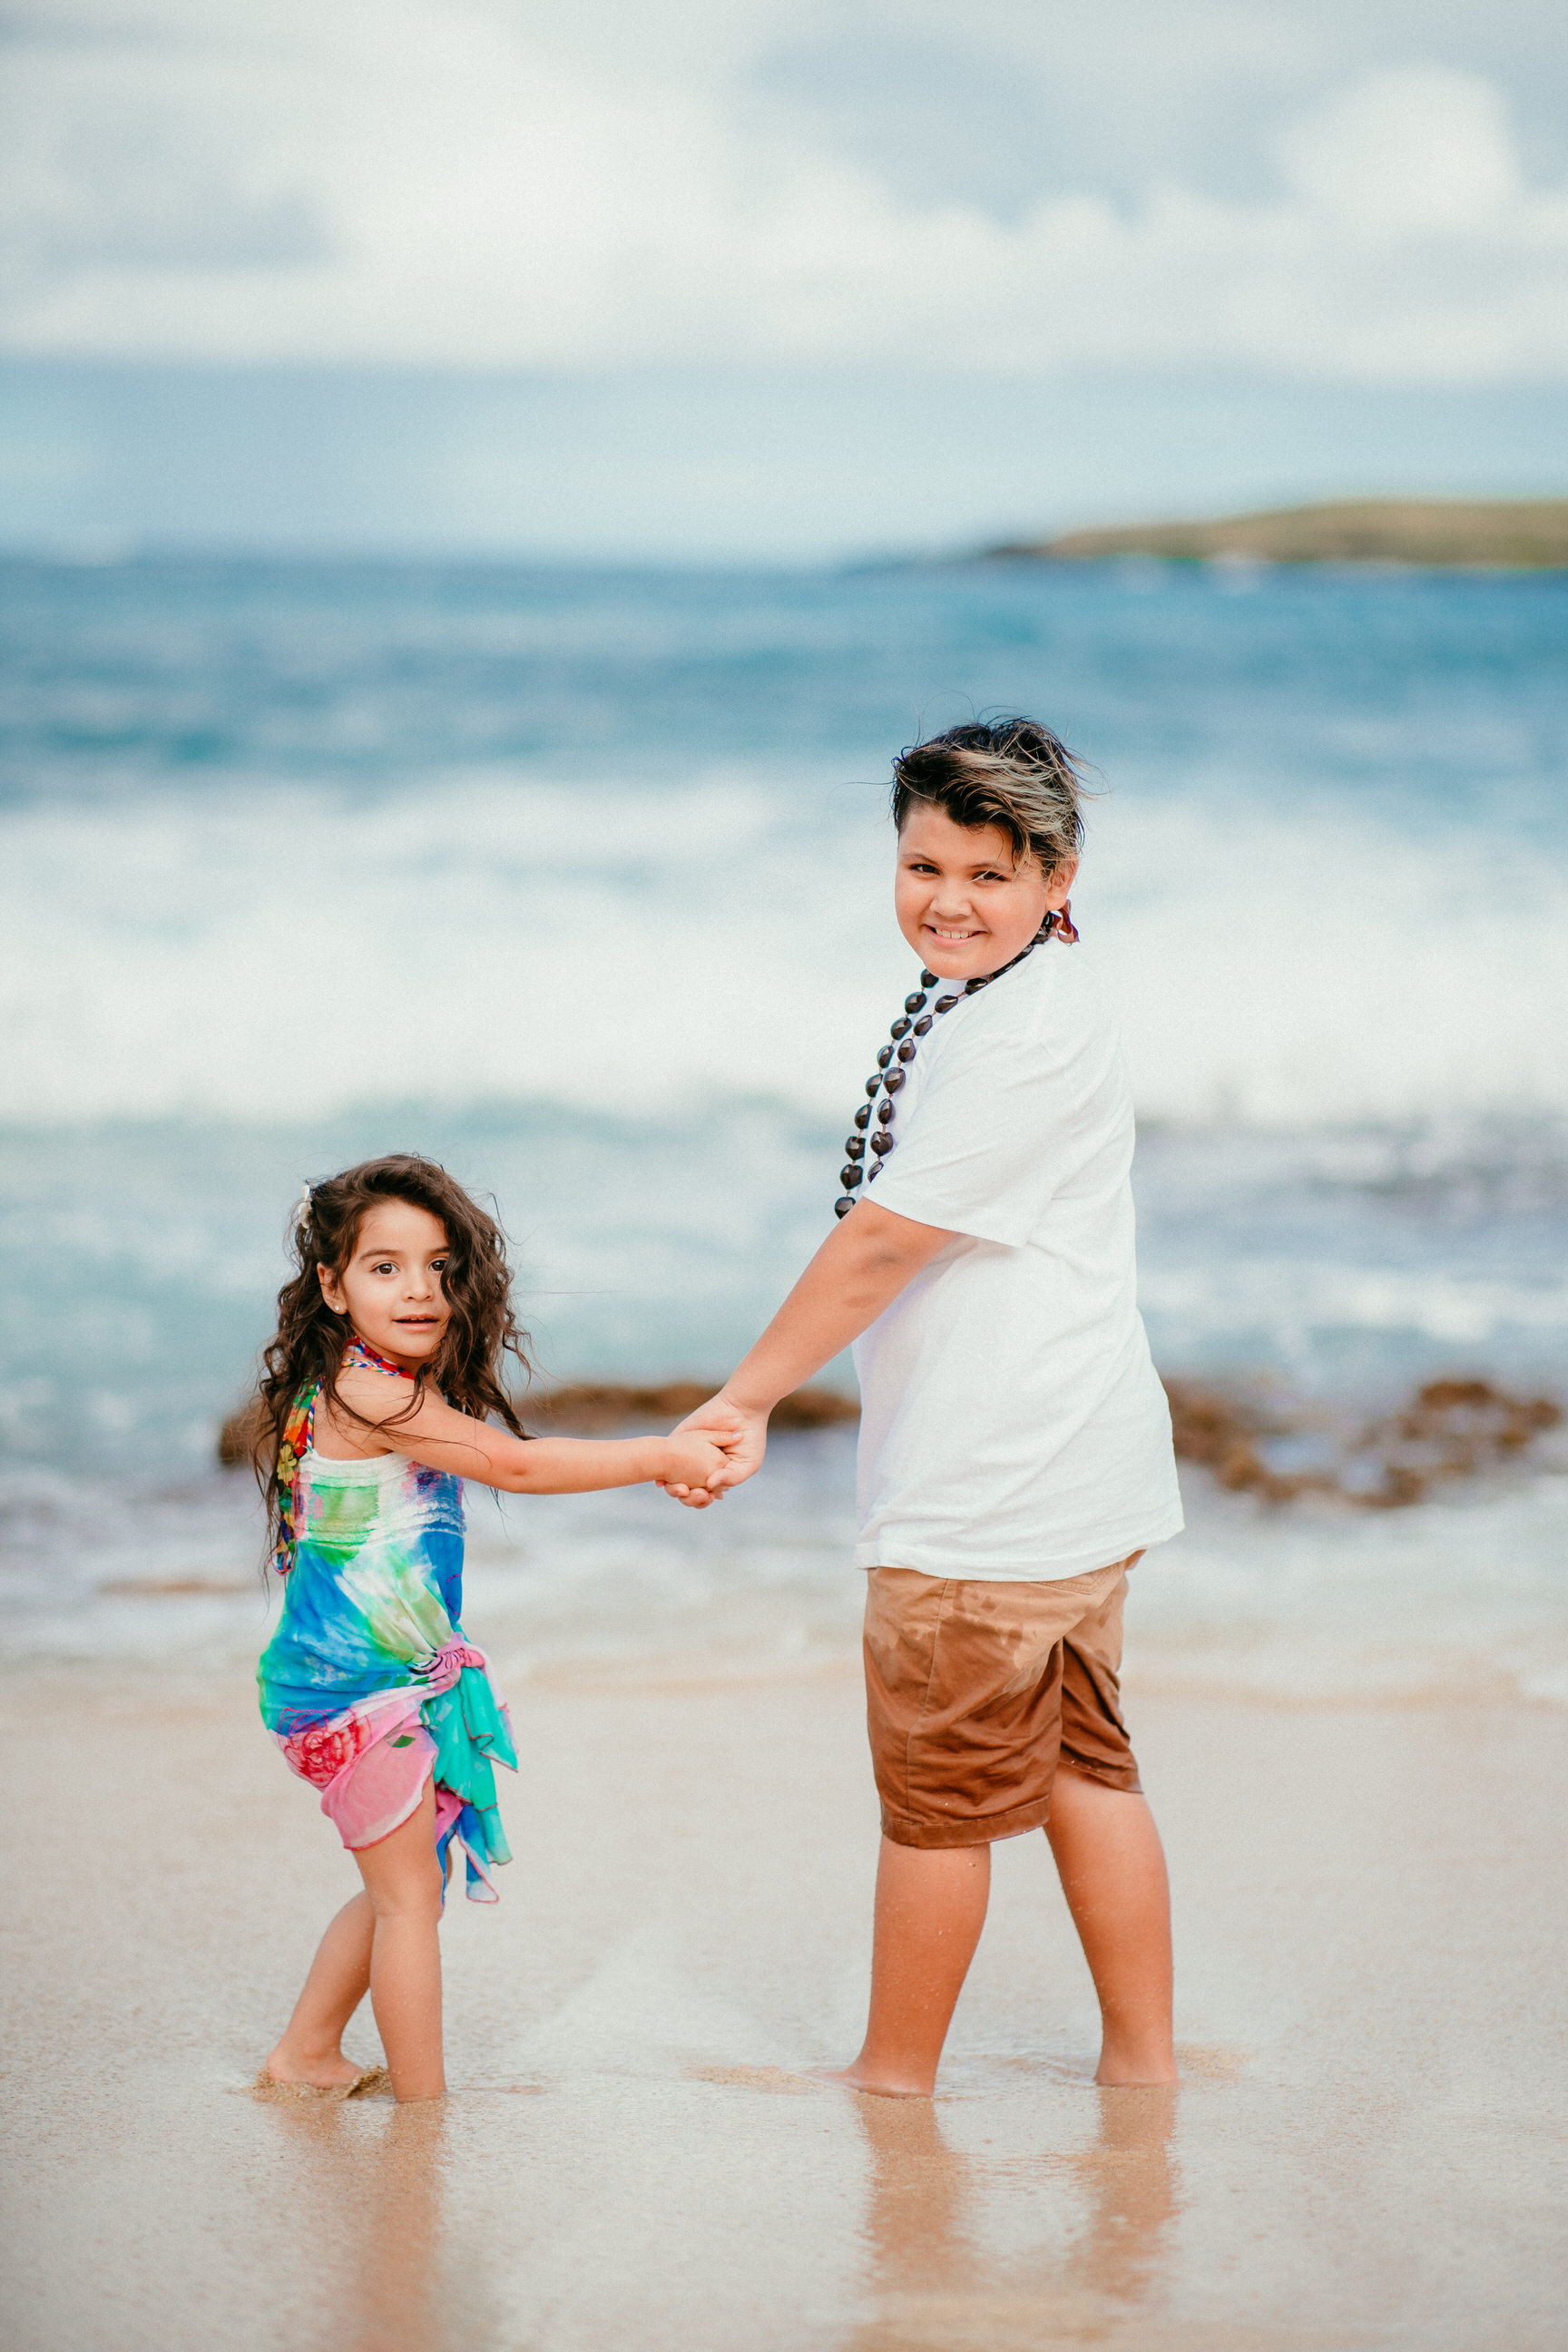 Lopez Family Vacation on Waimanalo Beach - Hawaii Family Photographer - Ketino Photography13.jpg